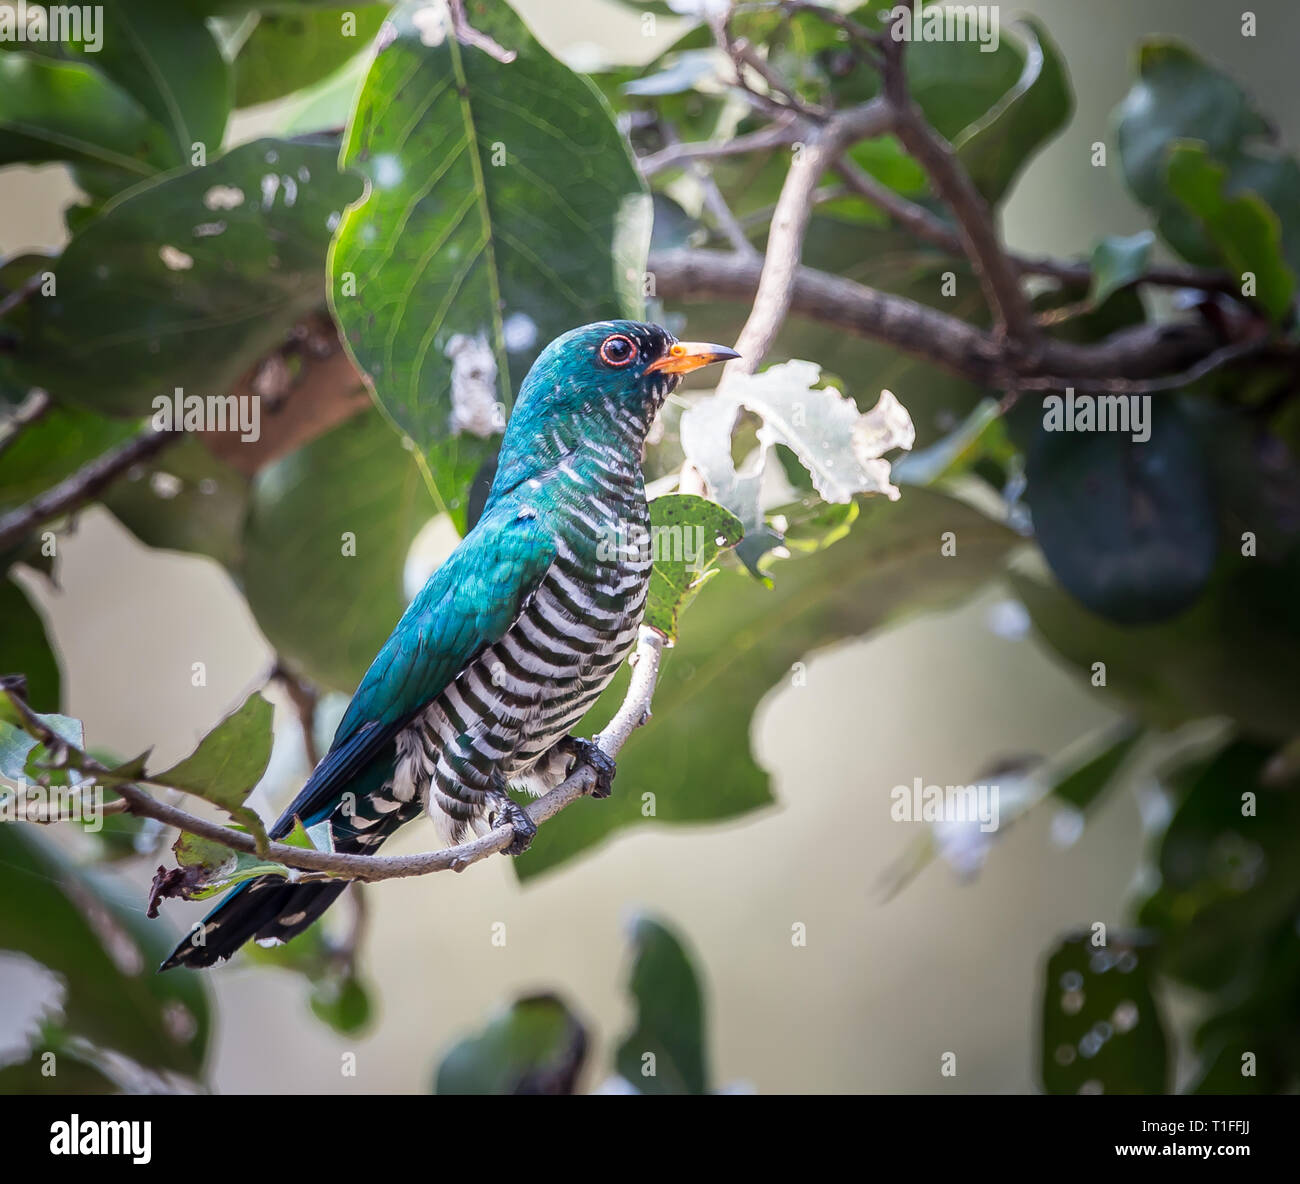 Sciencing.com › science › nature › animals animals found in. Asian Emerald Cuckoo Chrysococcyx Maculatus Cactus Emerald Is Native To The Tropical Evergreen Forests Of Northern India Southern China And Northe Stock Photo Alamy